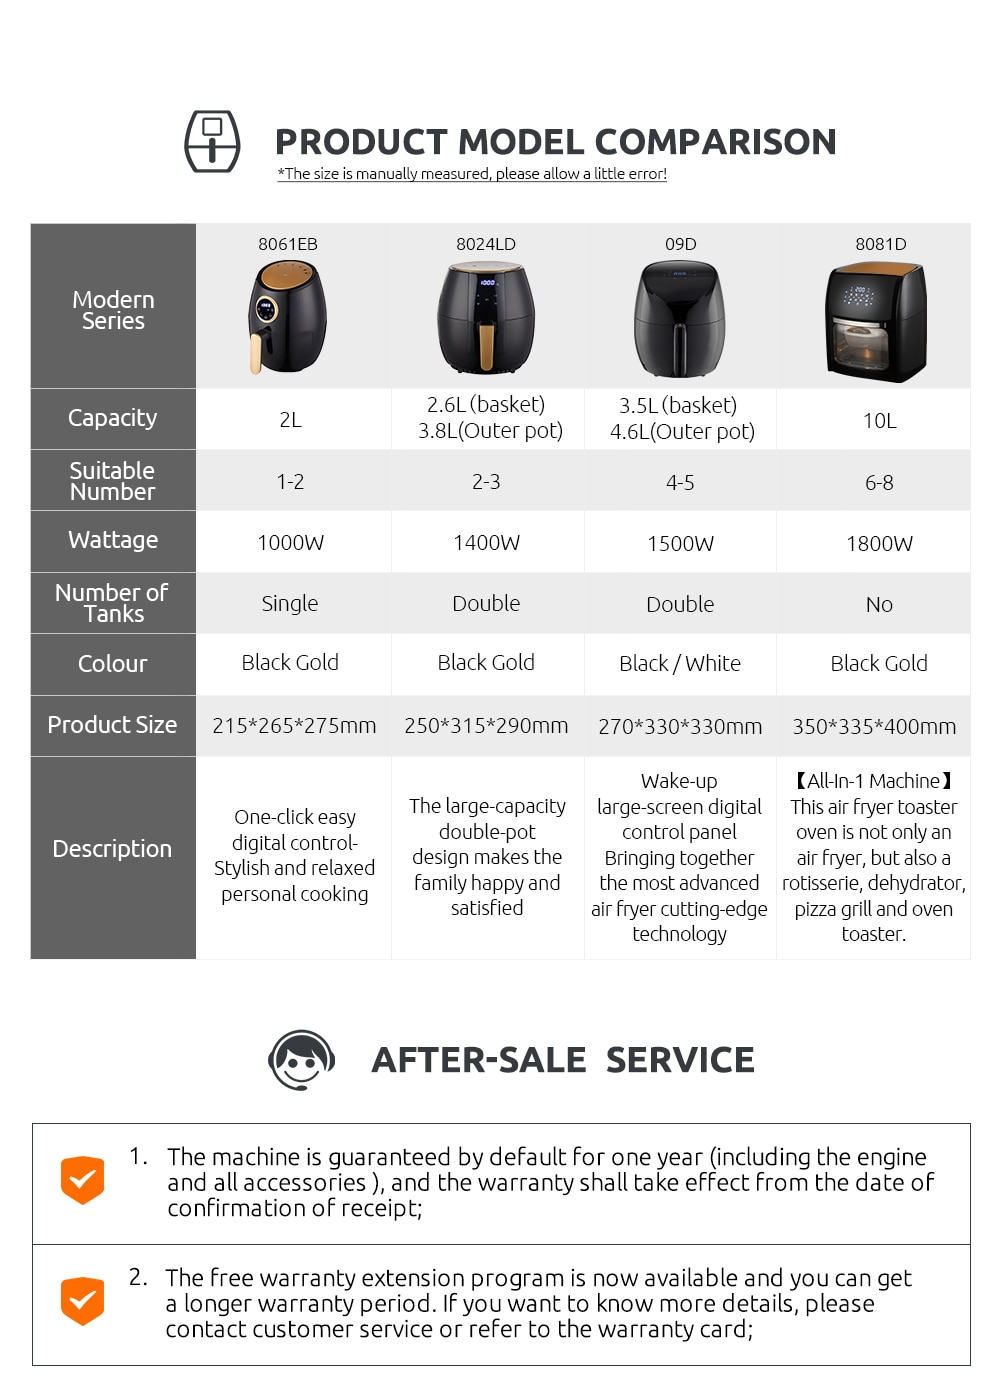 MIUI 3L Oil-Free Air Fryer Oven Digital Touch Electric Fryer MI-CYCLONE 360 °Baking Toaster French Fries Machine EasyClean